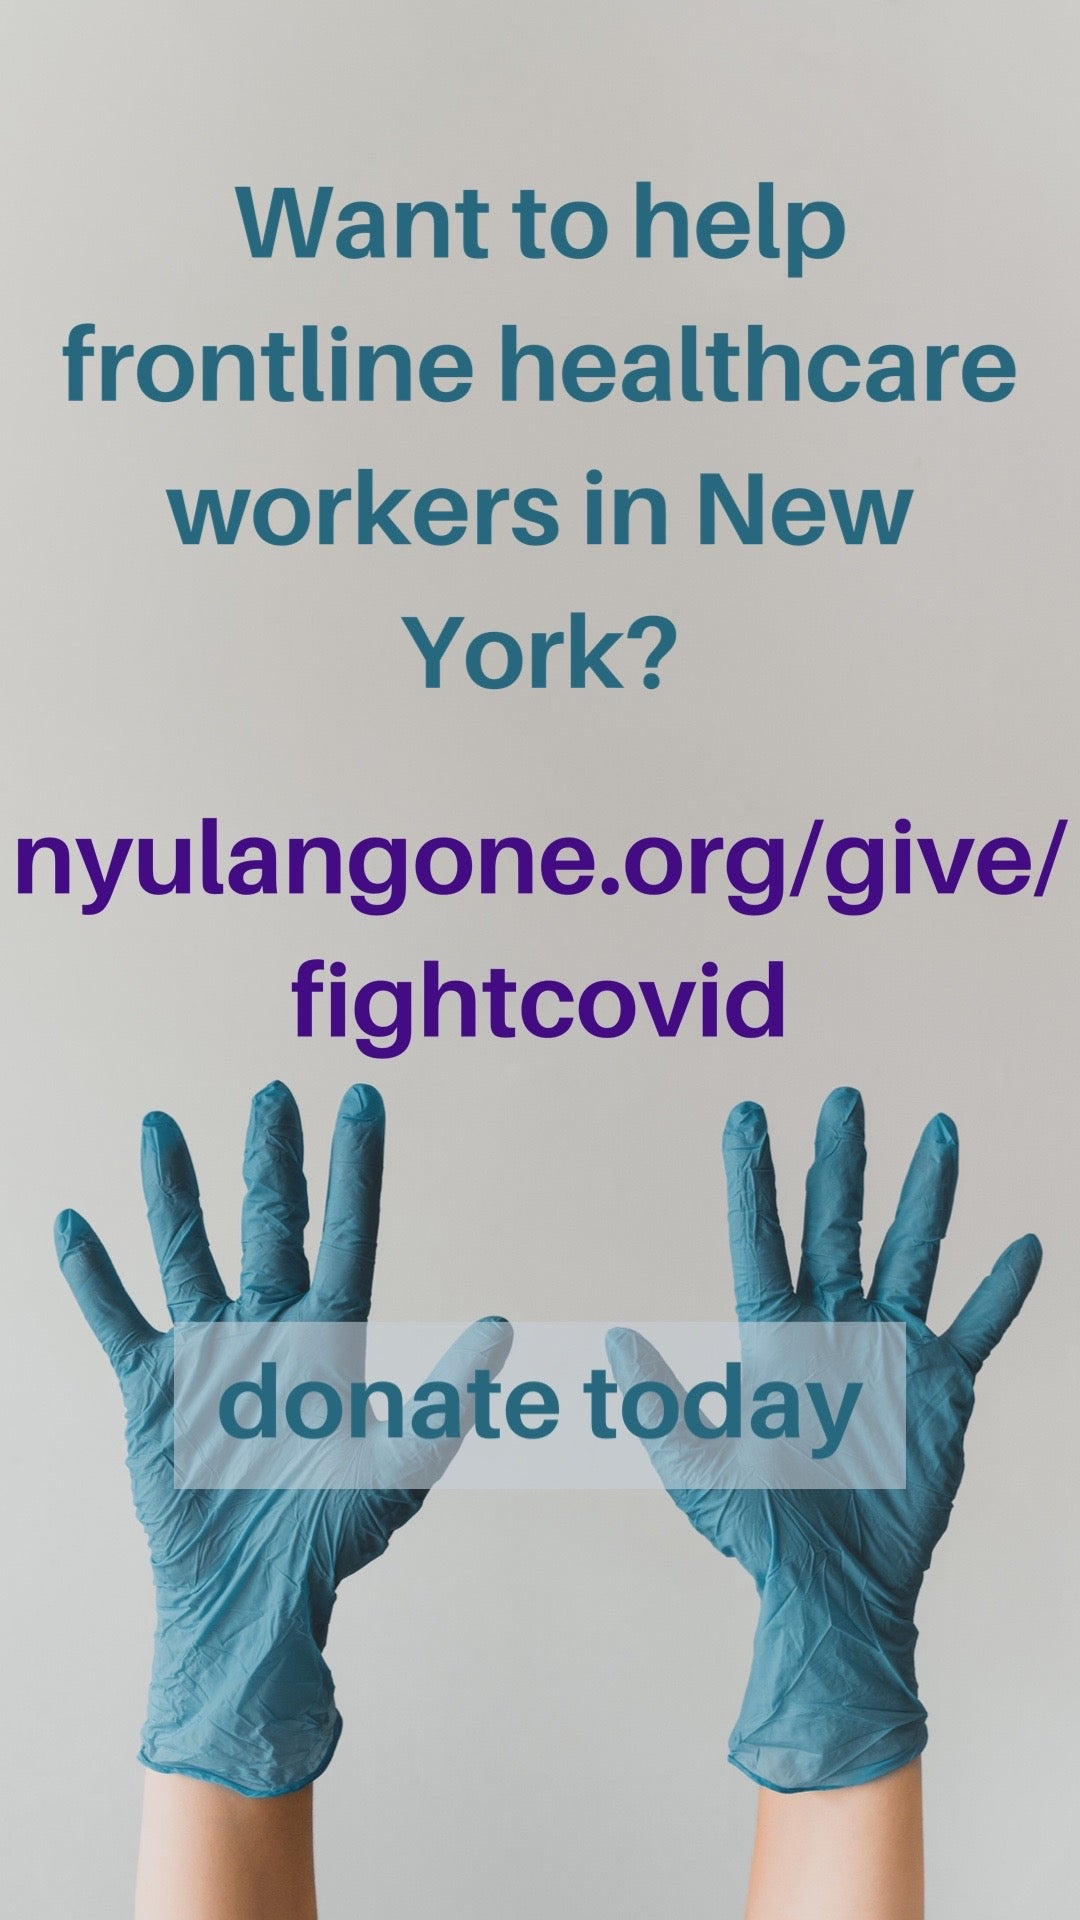 https://nyulangone.org/give/fundraise/feldthouse